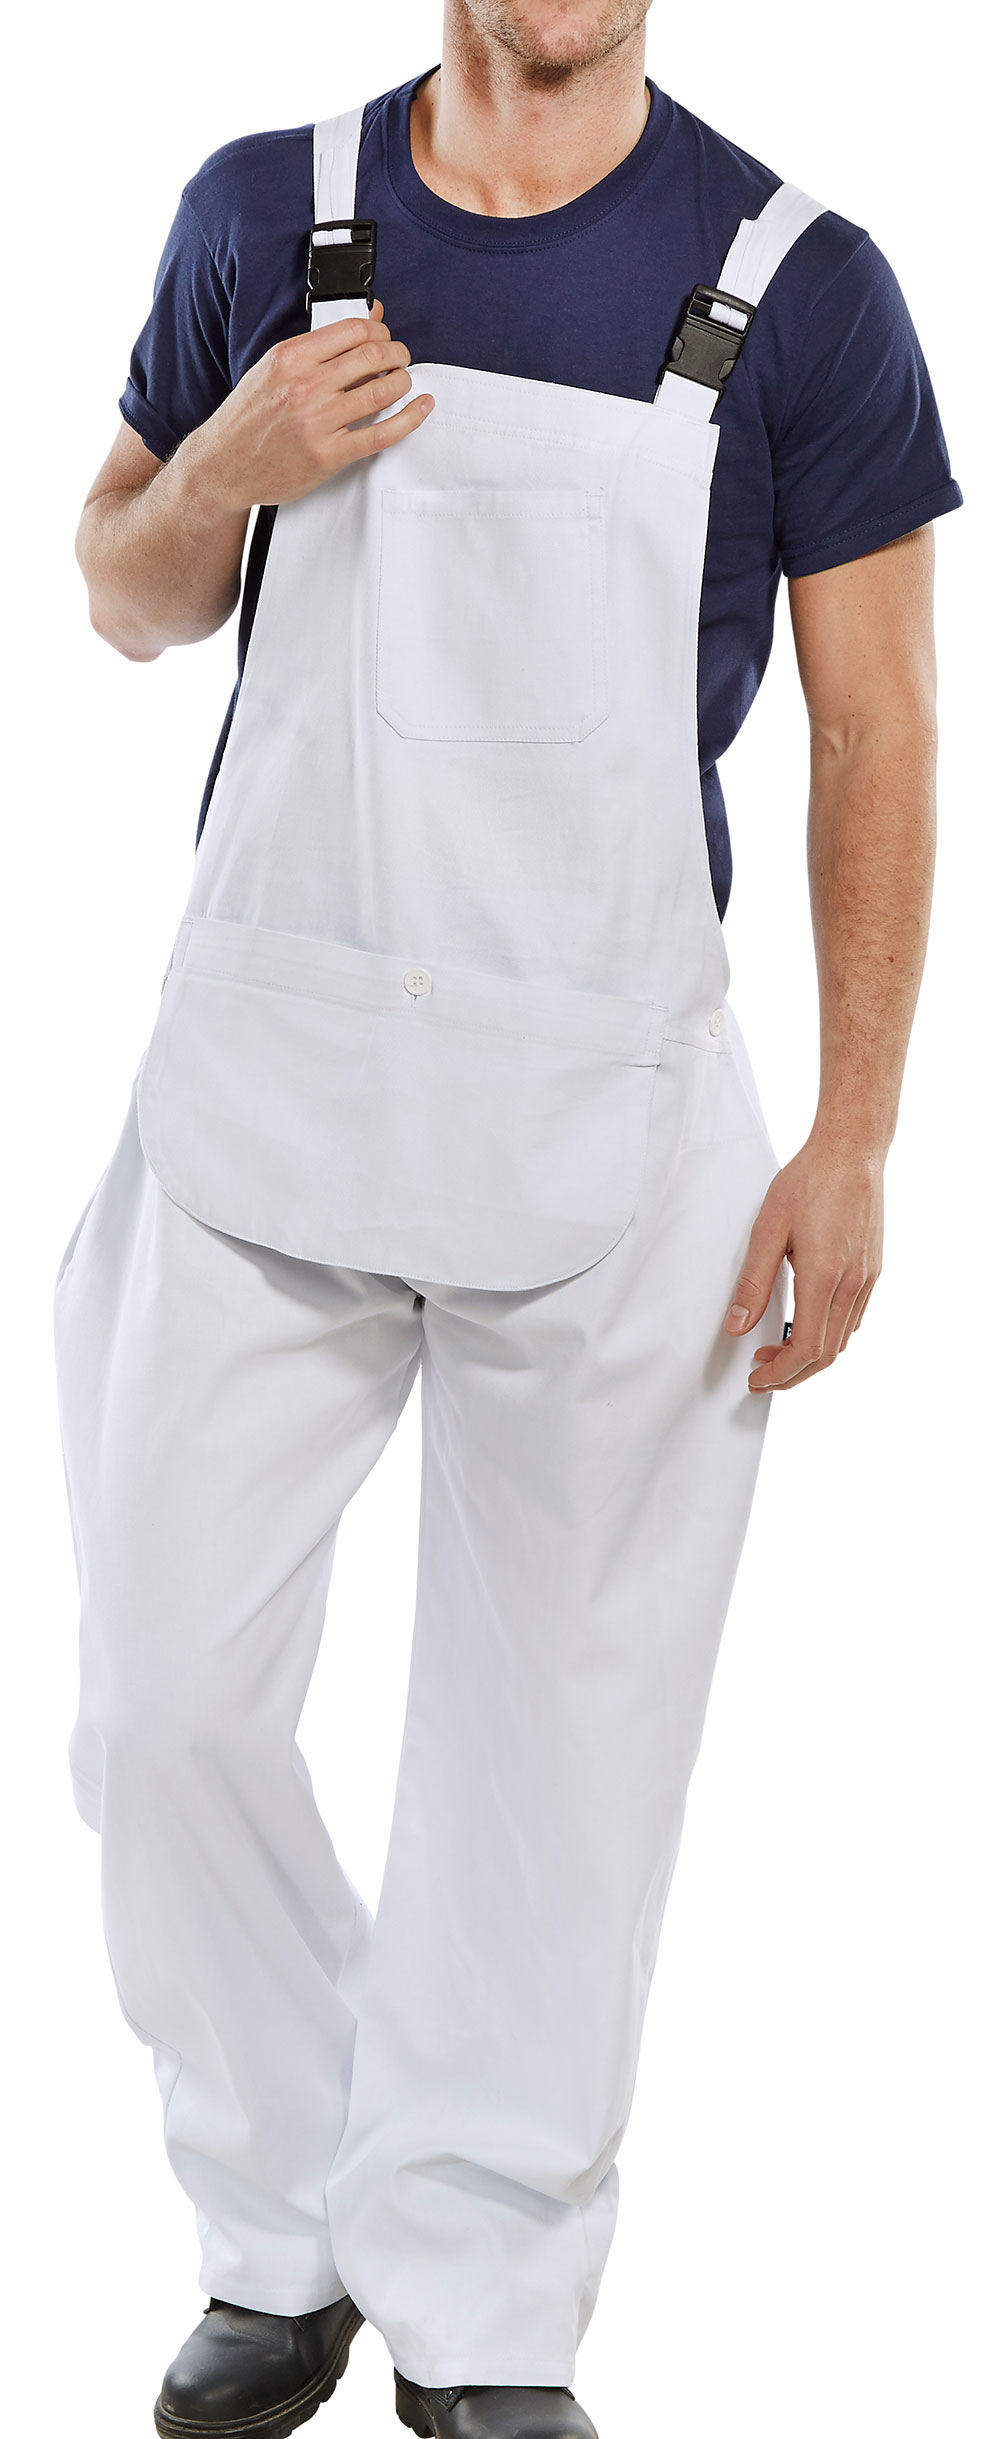 COTTON DRILL BIB AND BRACE - CDBB